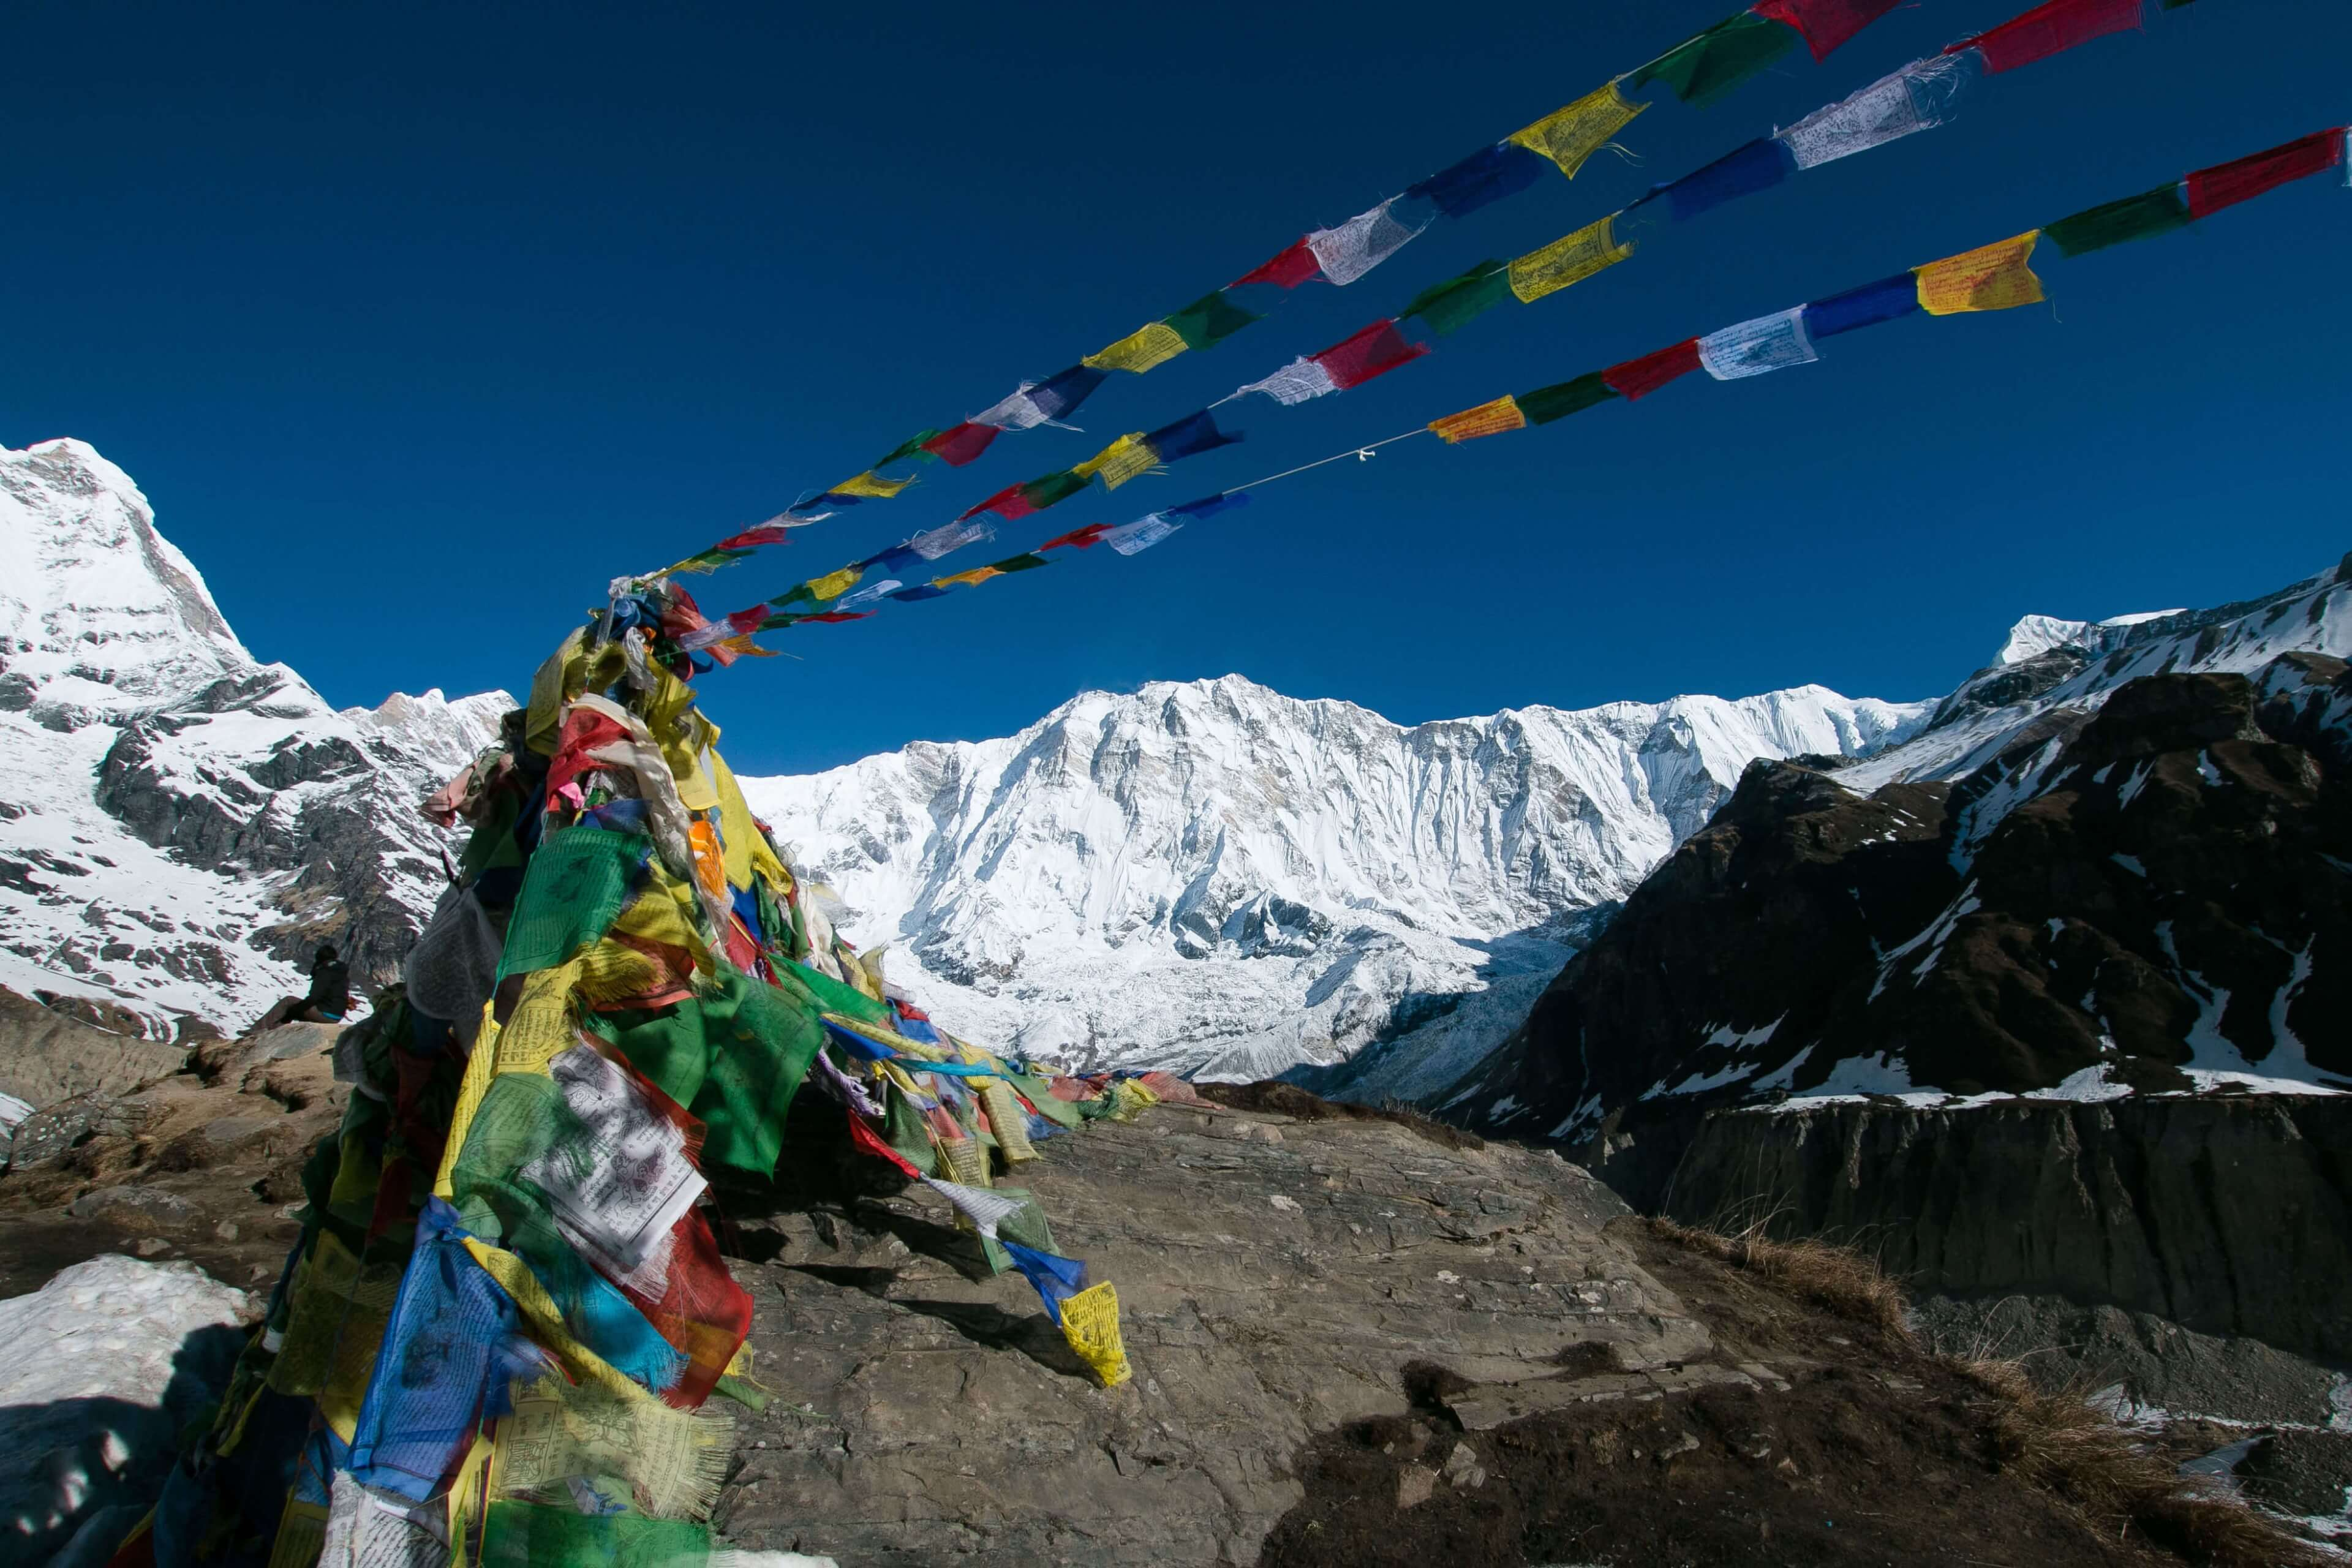 Annapurna Base Camp Prayer Flags